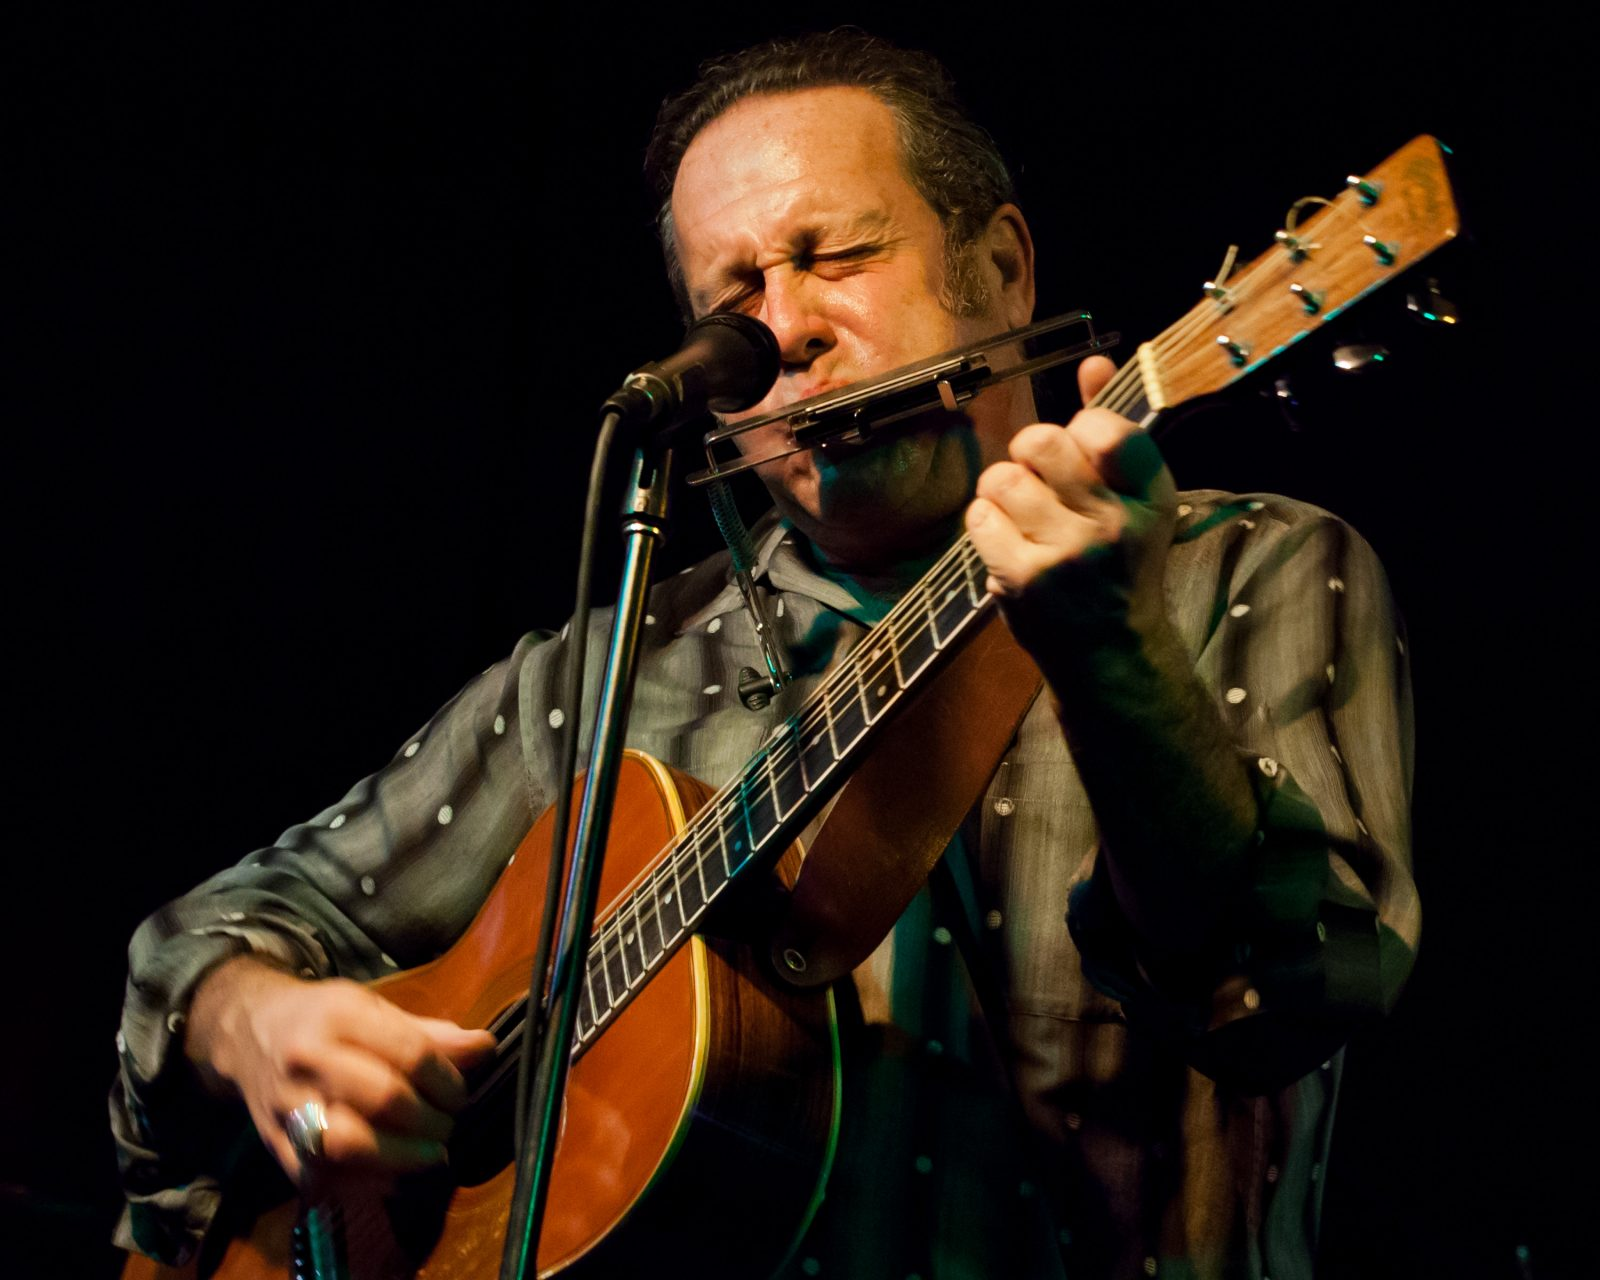 Singer/songwriter Marc Berger will perform inside the 9th Ward @ Babeville on March 31.